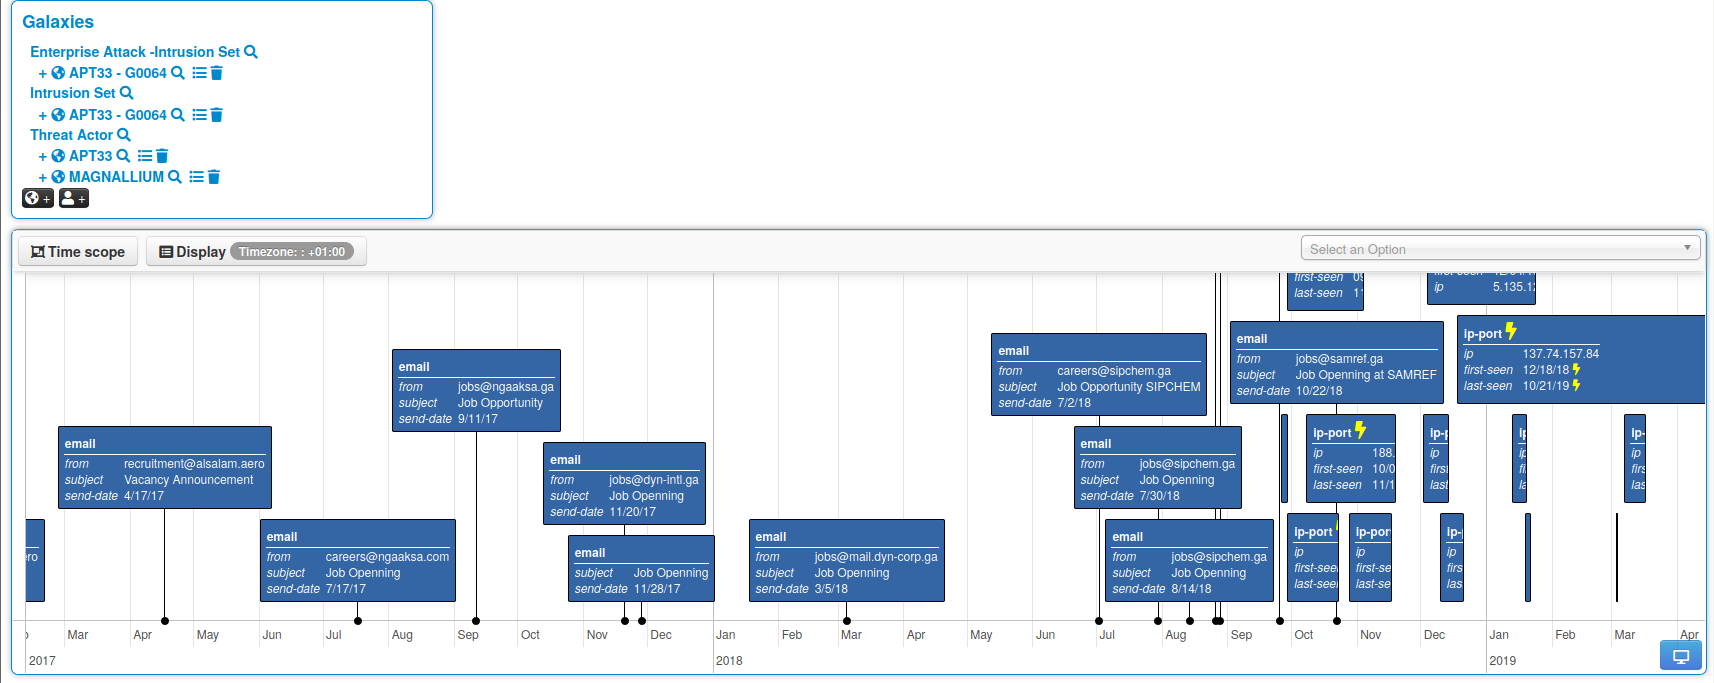 The representation of spear phishing using the timeline function in MISP